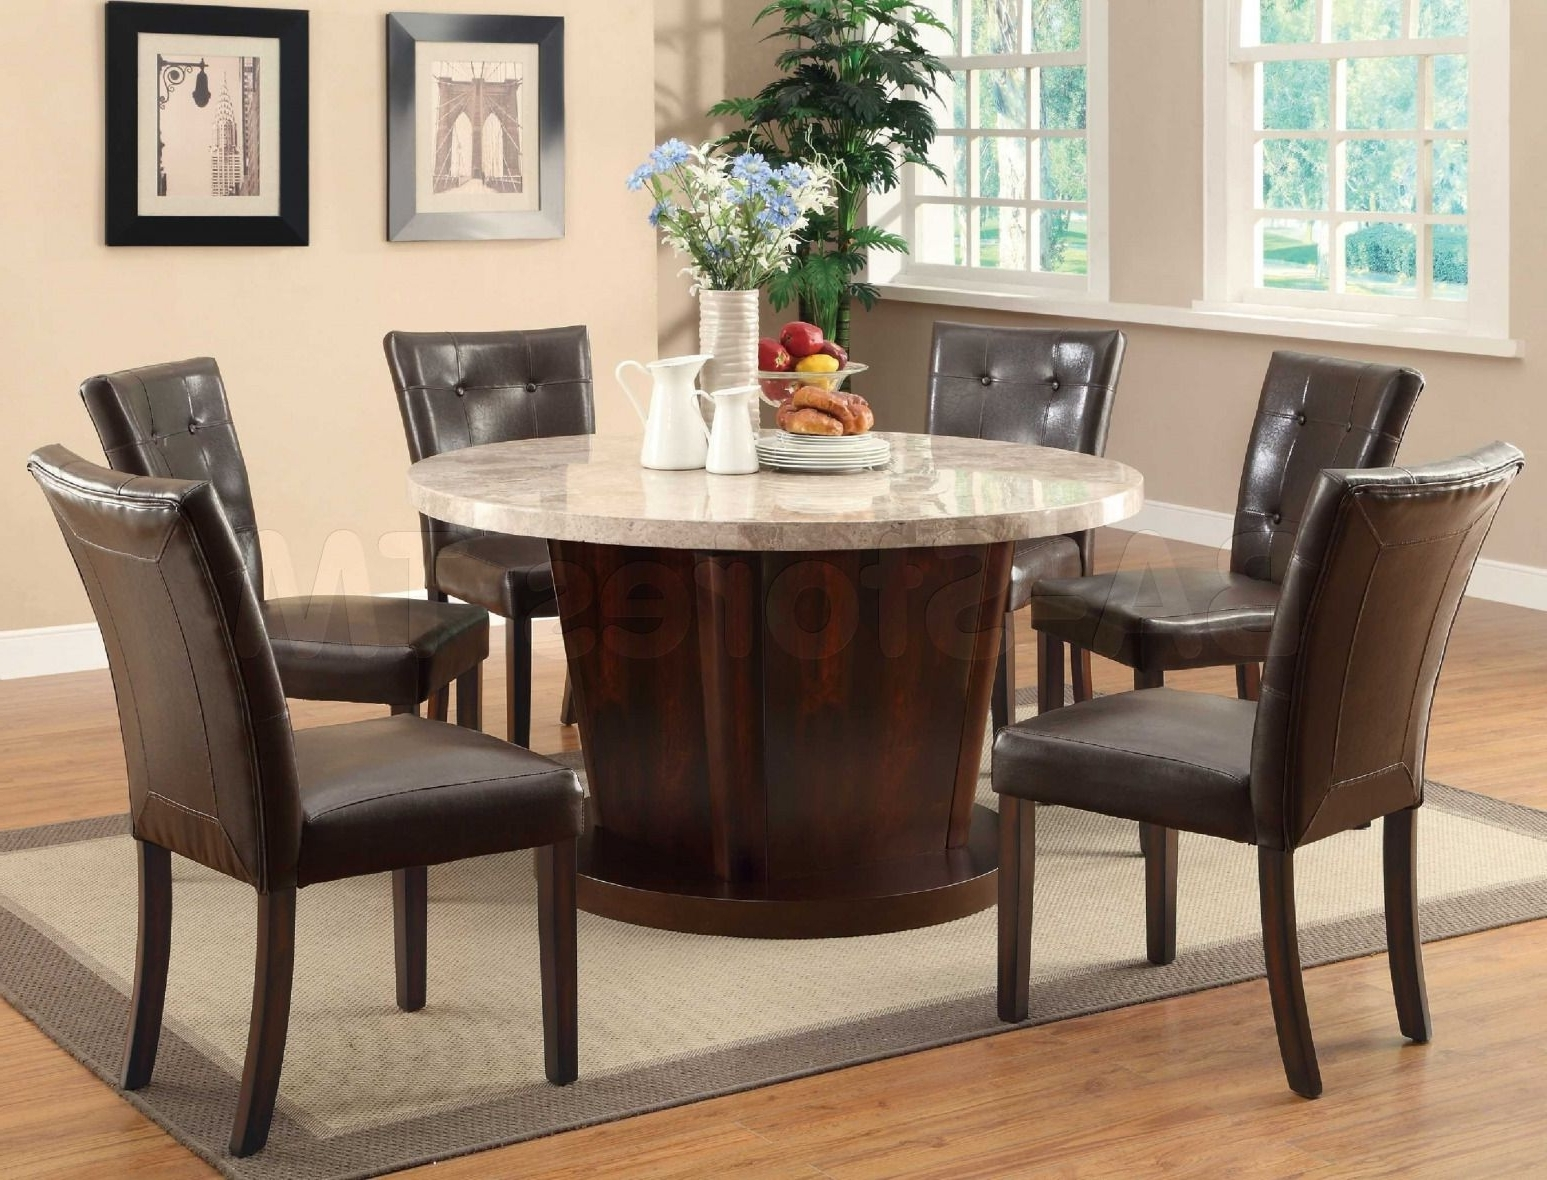 6 Person Round Dining Tables For Recent 100+ Round 6 Person Dining Table – Best Office Furniture Check More (Gallery 13 of 25)